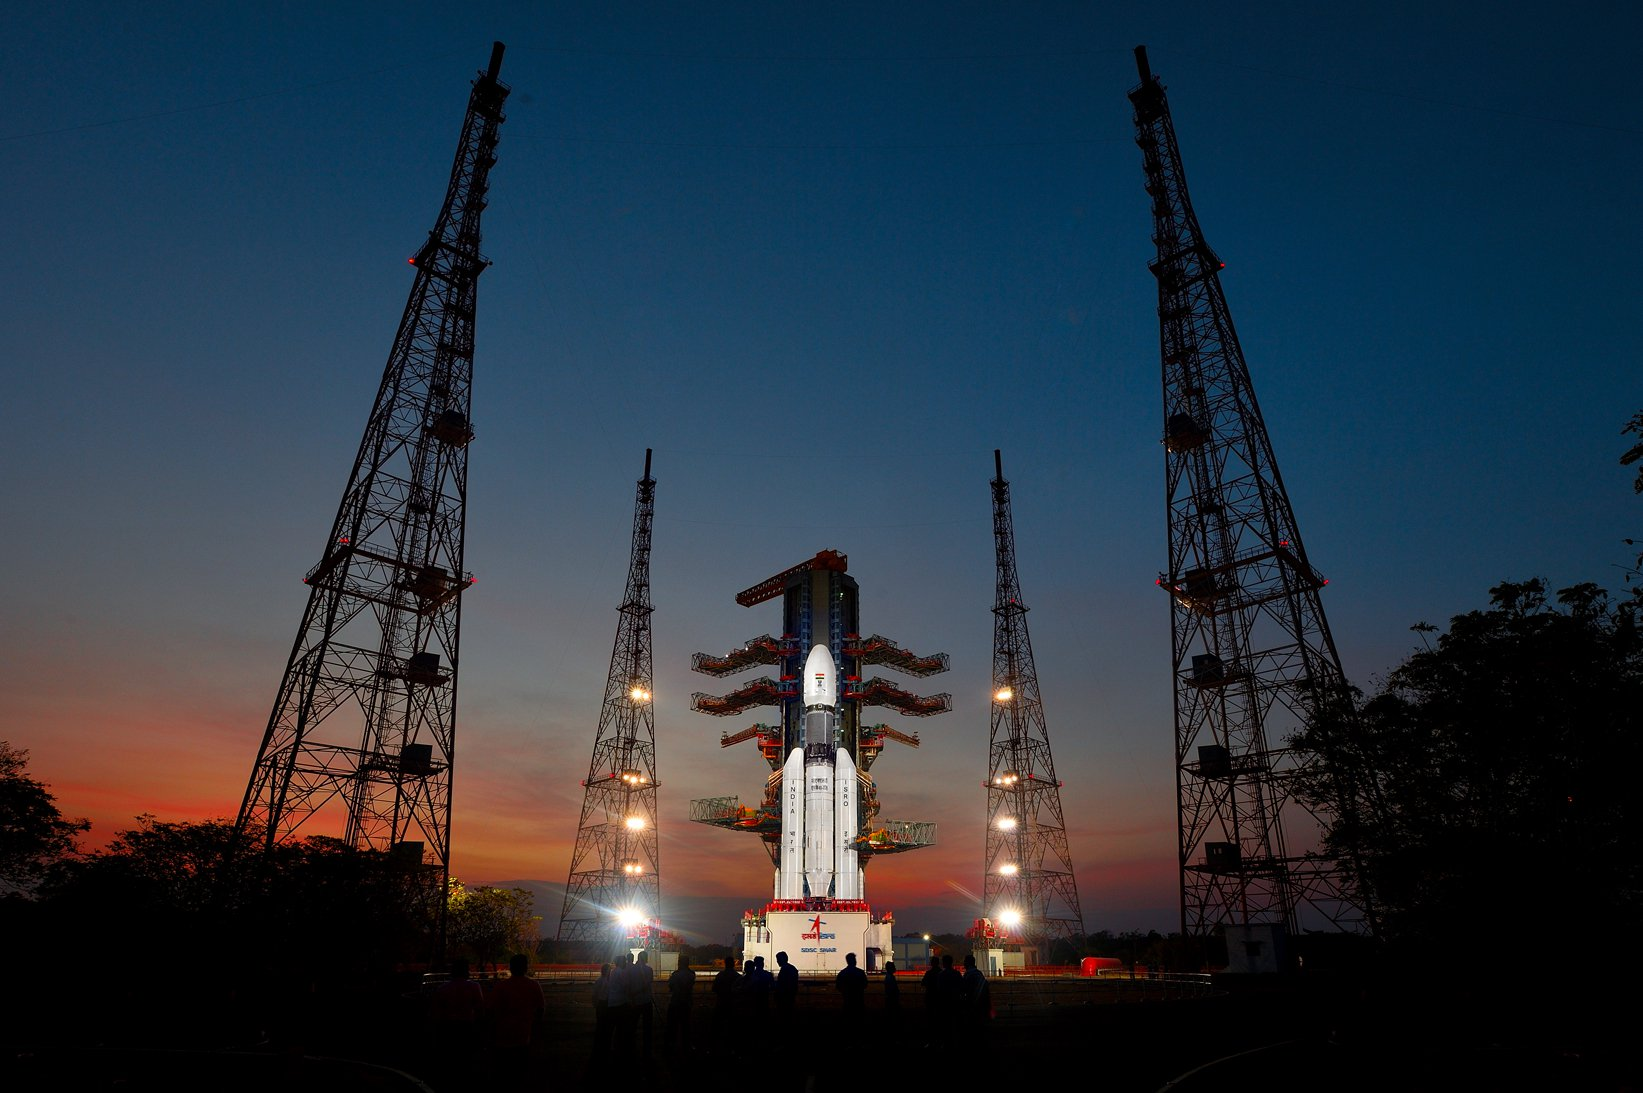 GSLV Mk-III at the Second Launch Pad